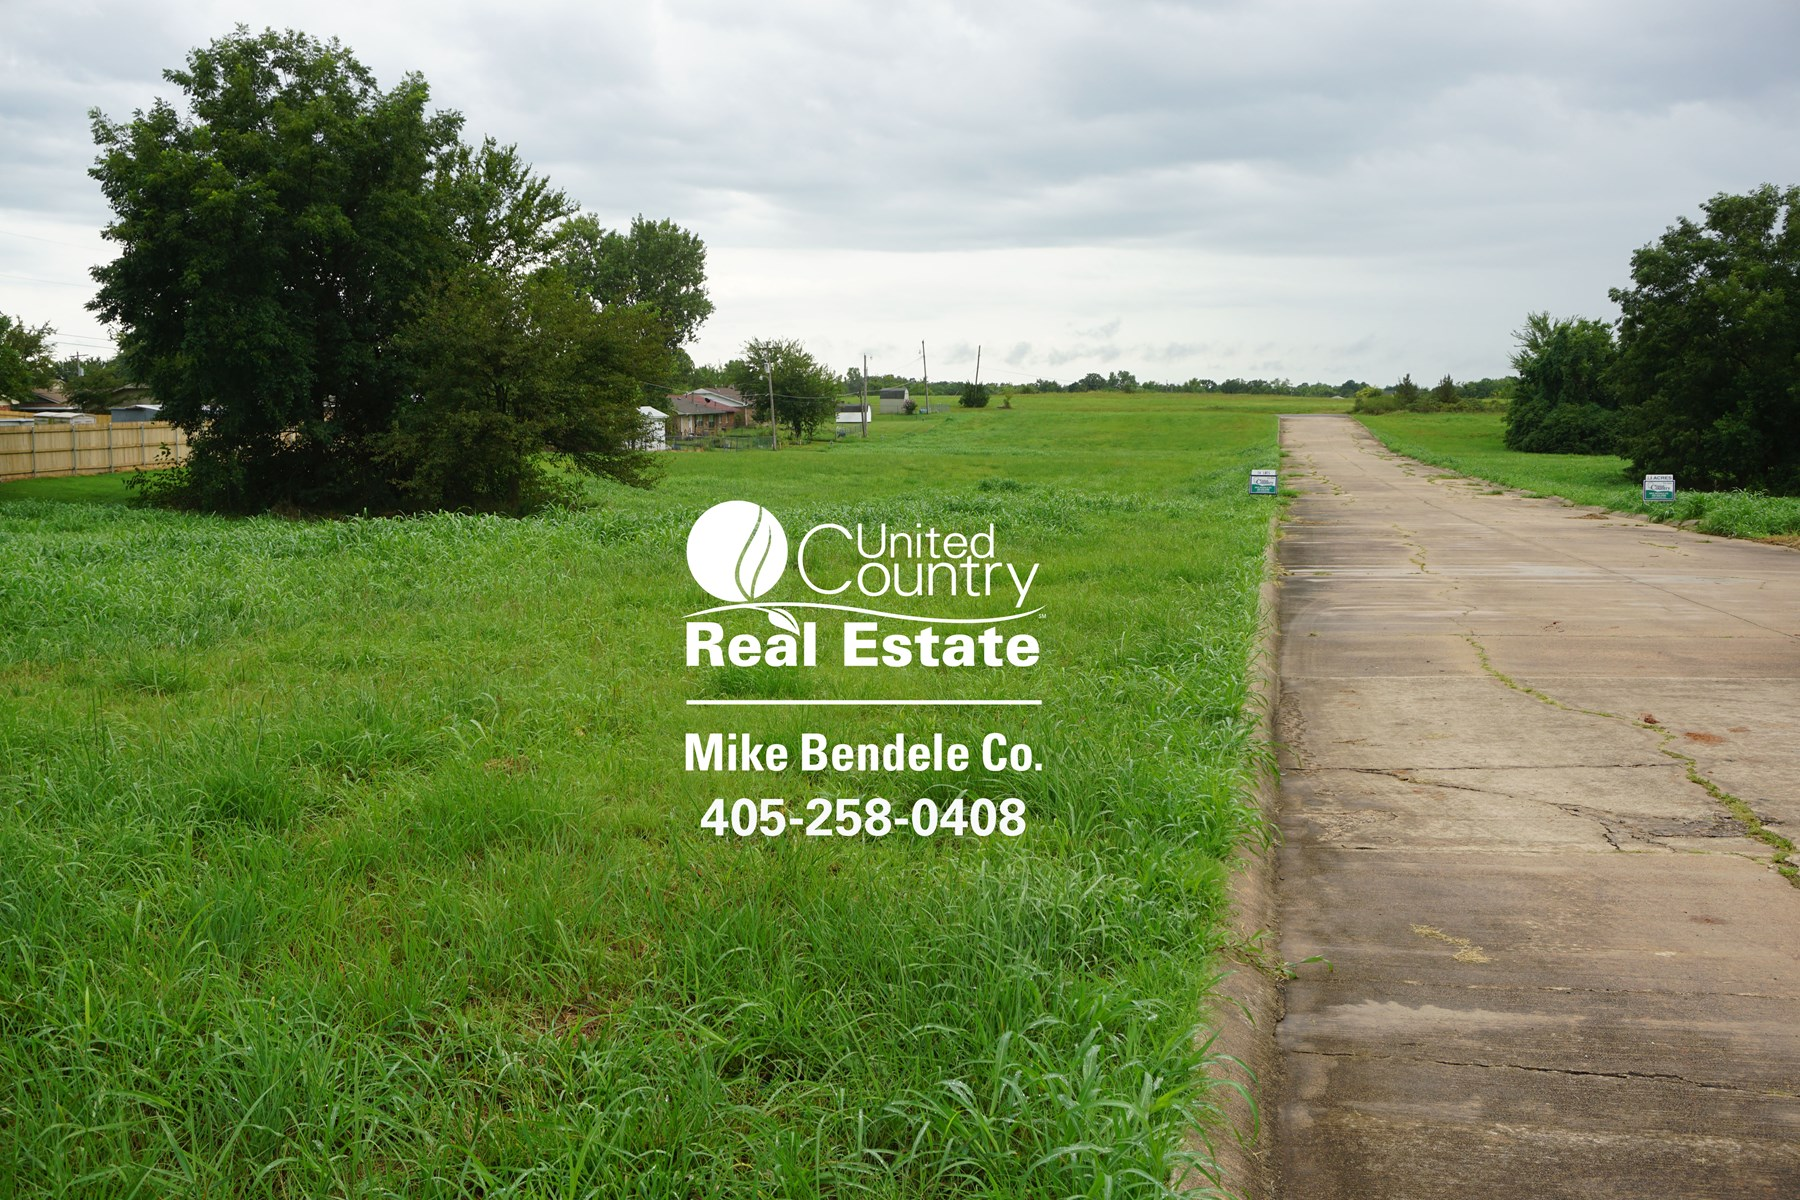 Acreage for Home Sites, Stroud, OK